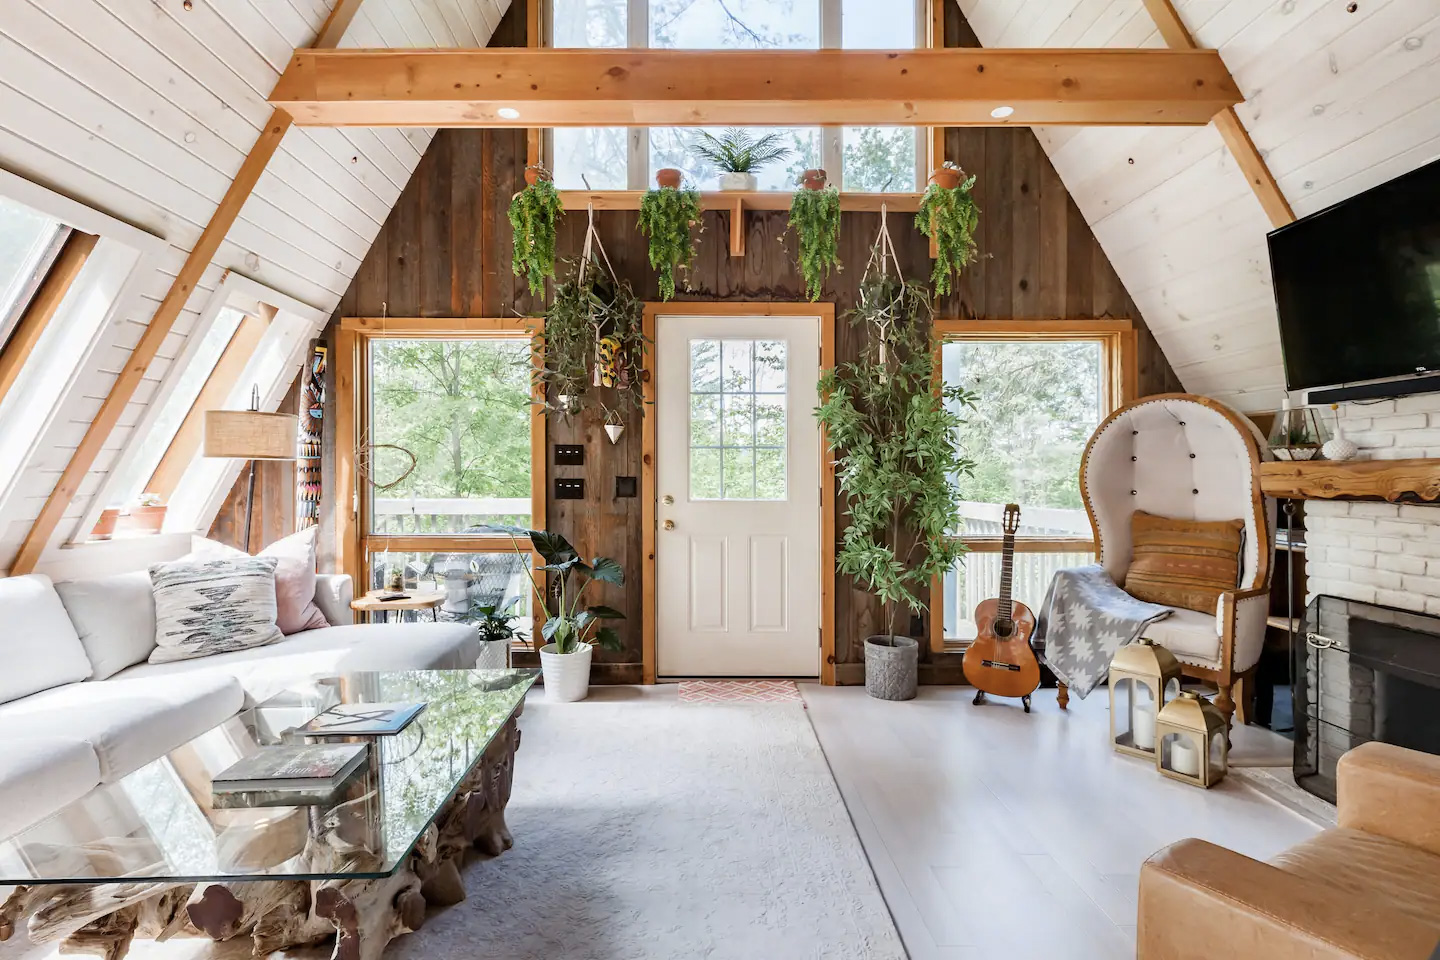 A frame cabin for rent with vintage 1970s vibes